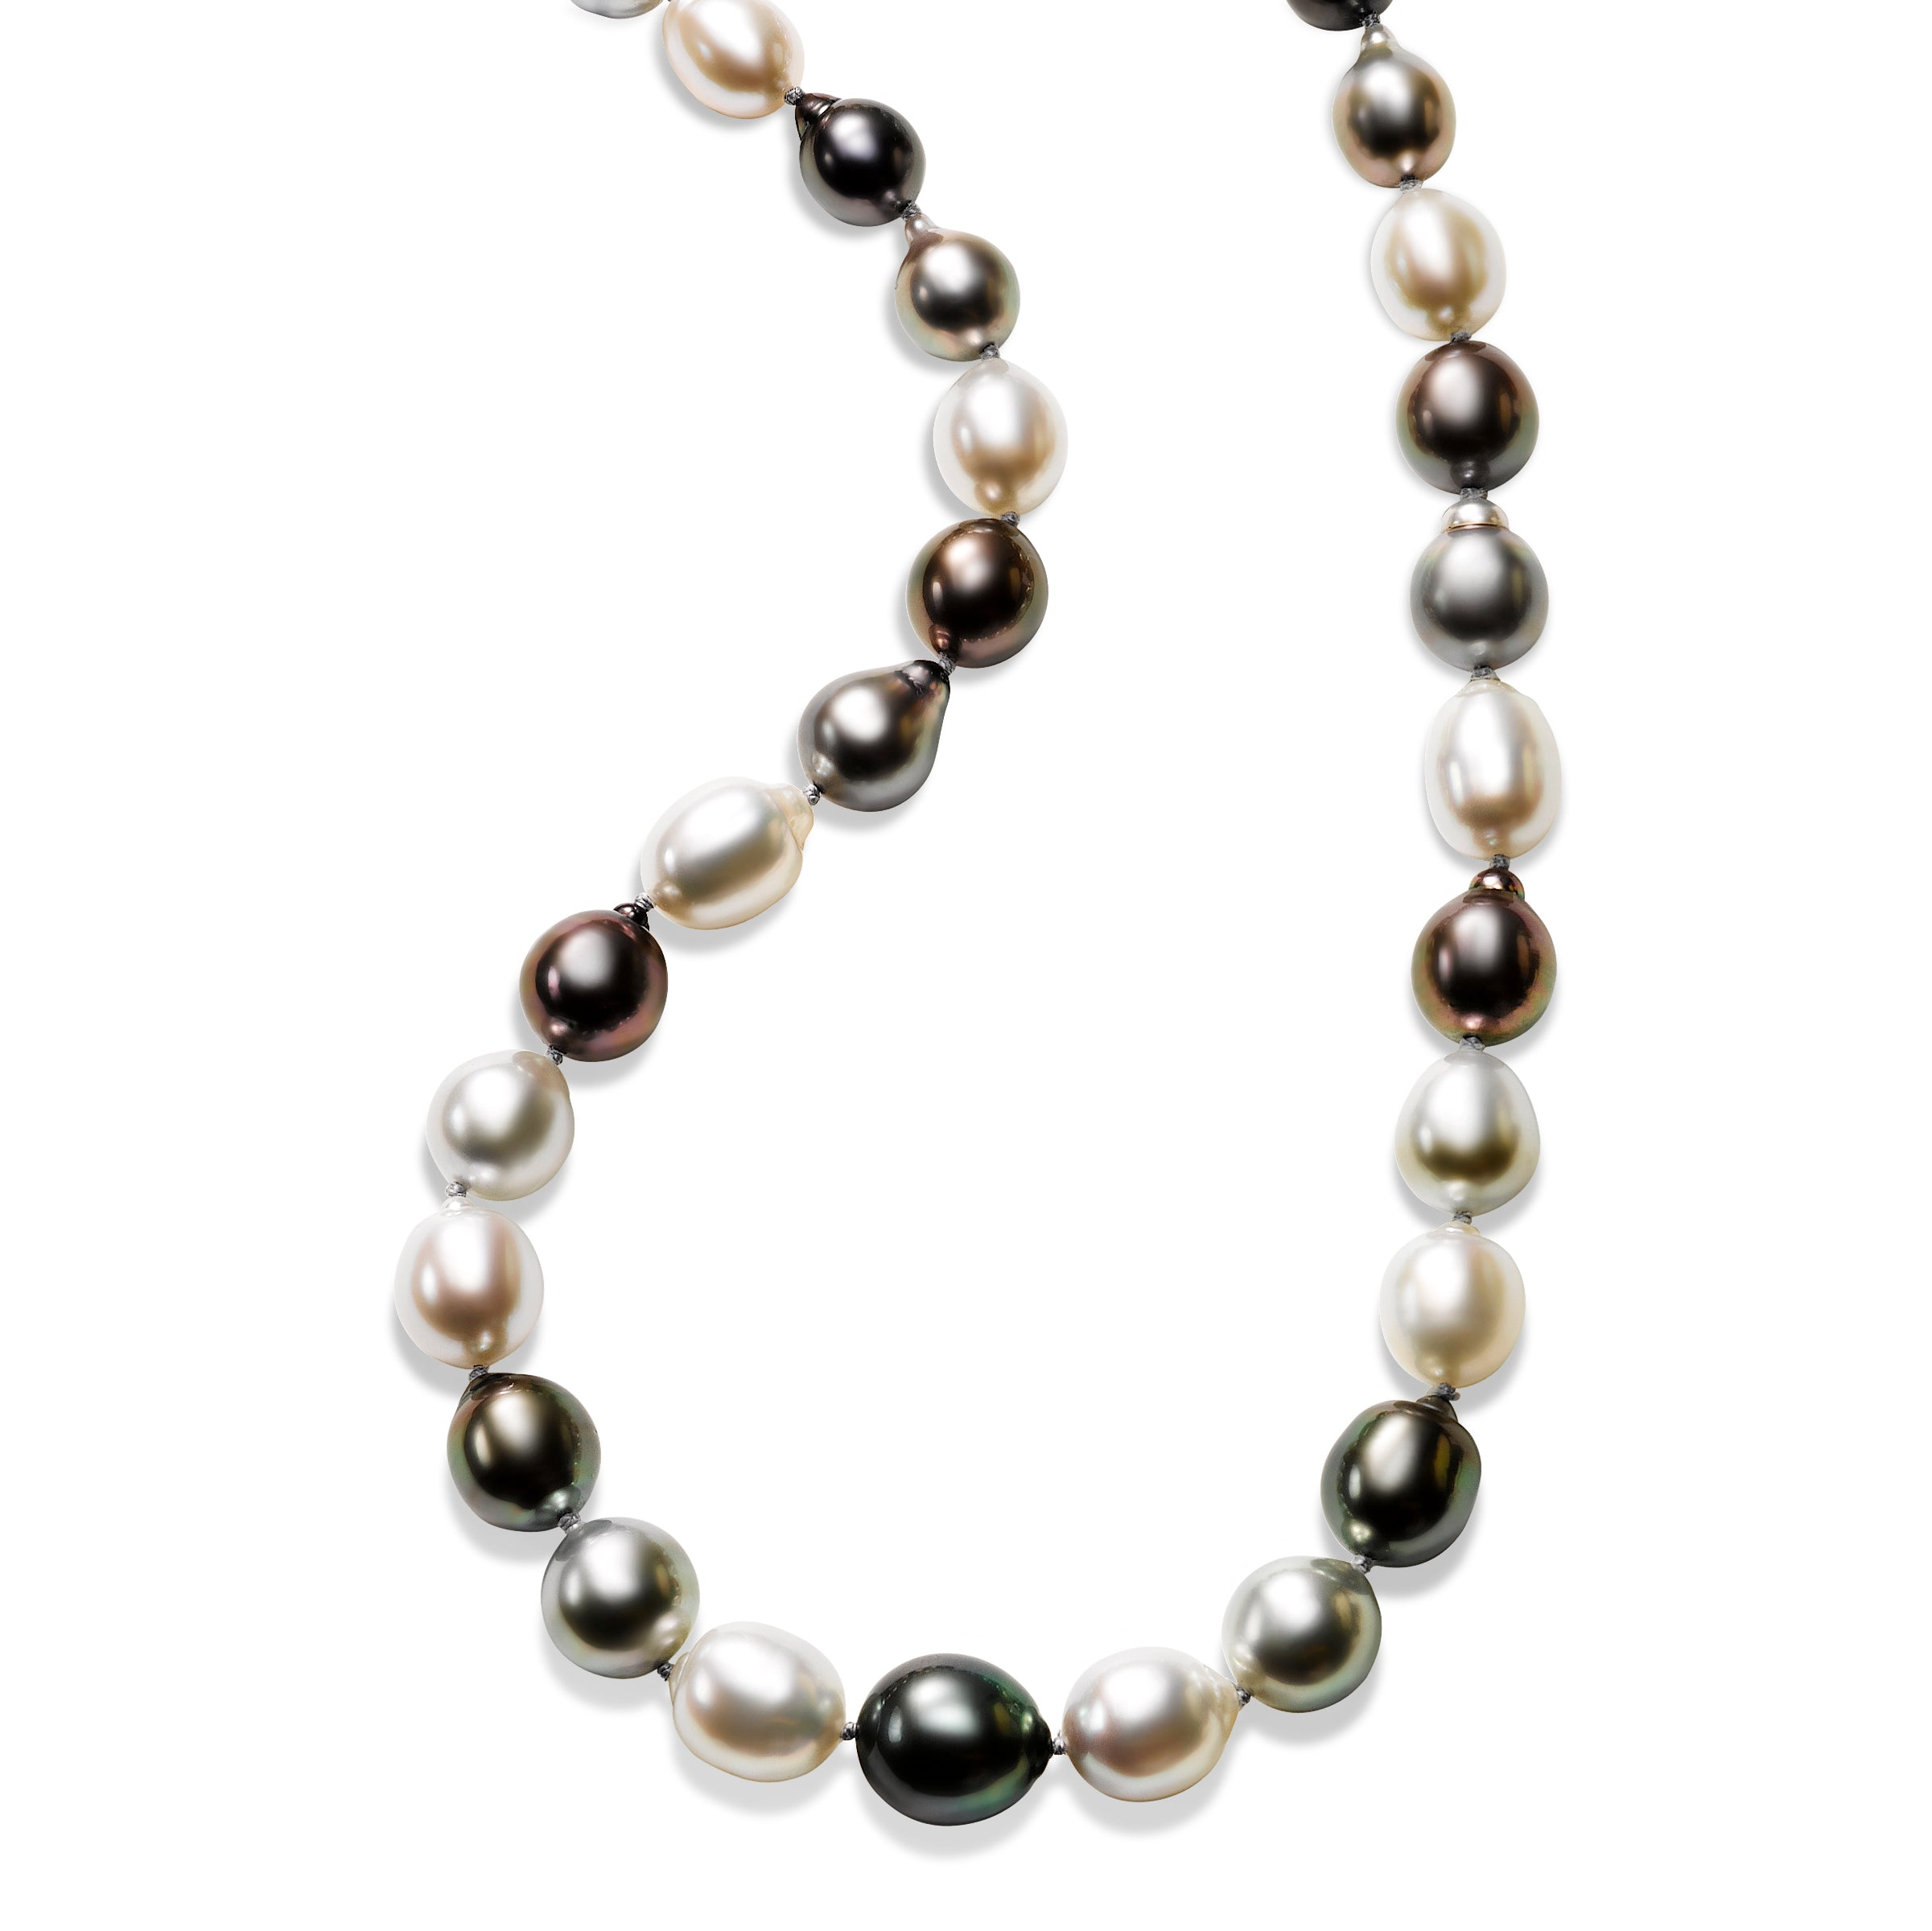 Tahitian Grey and White Baroque Cultured Pearl Necklace